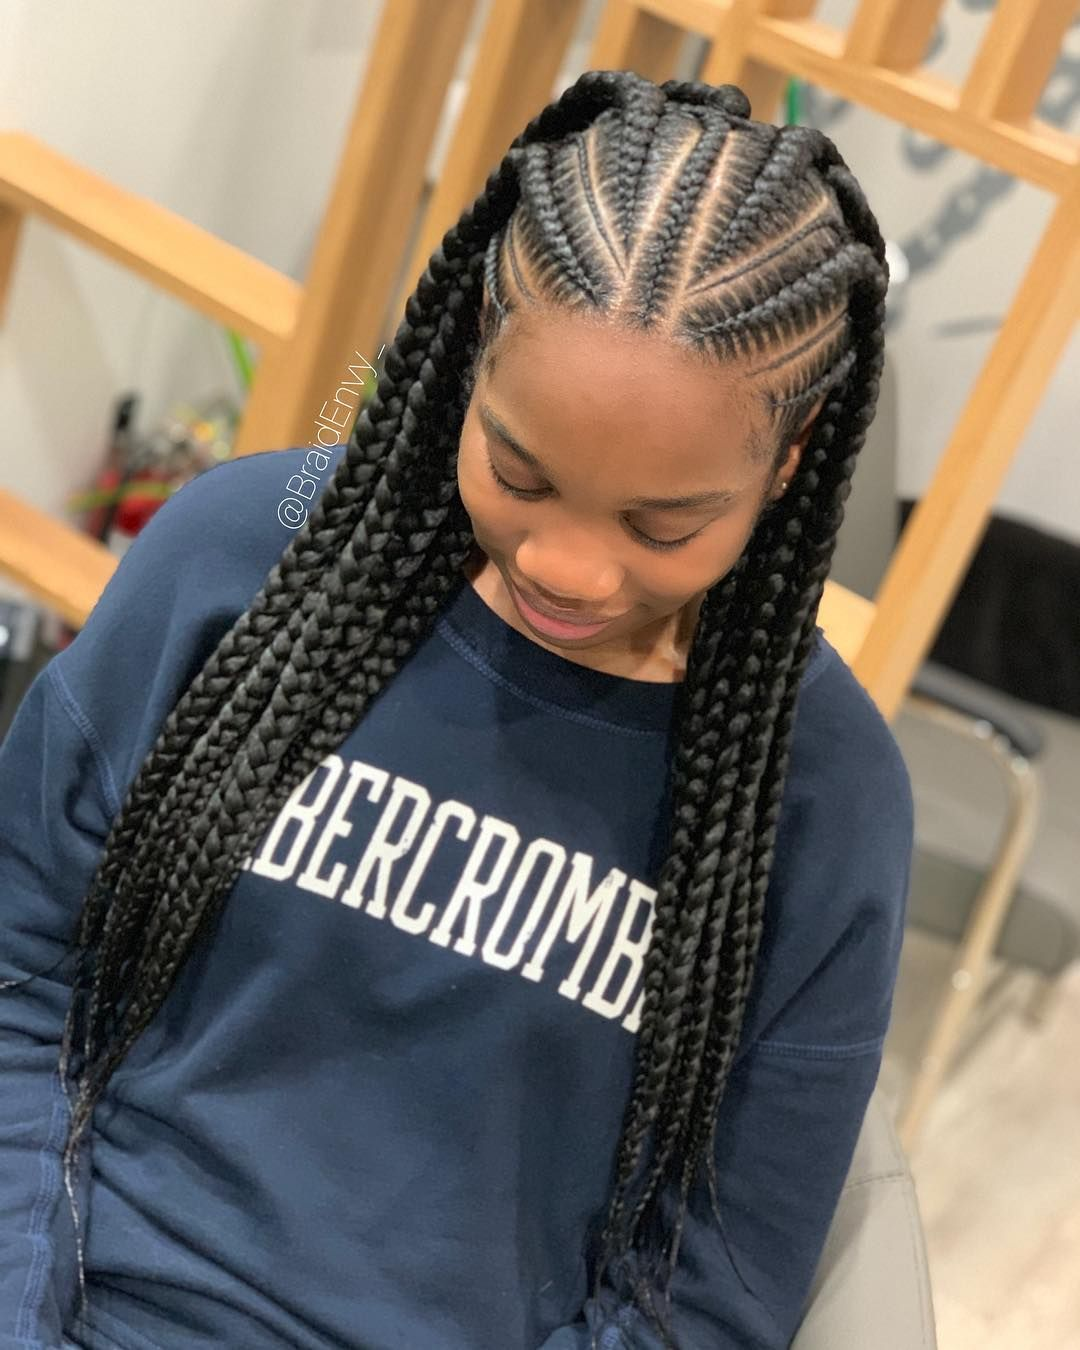 Amourjah On Instagram Easy Peasy Lemon Squeazy 3 Different Hairstyle Combinations Book Under Ju Cornrow Hairstyles Braided Hairstyles Braids For Black Hair